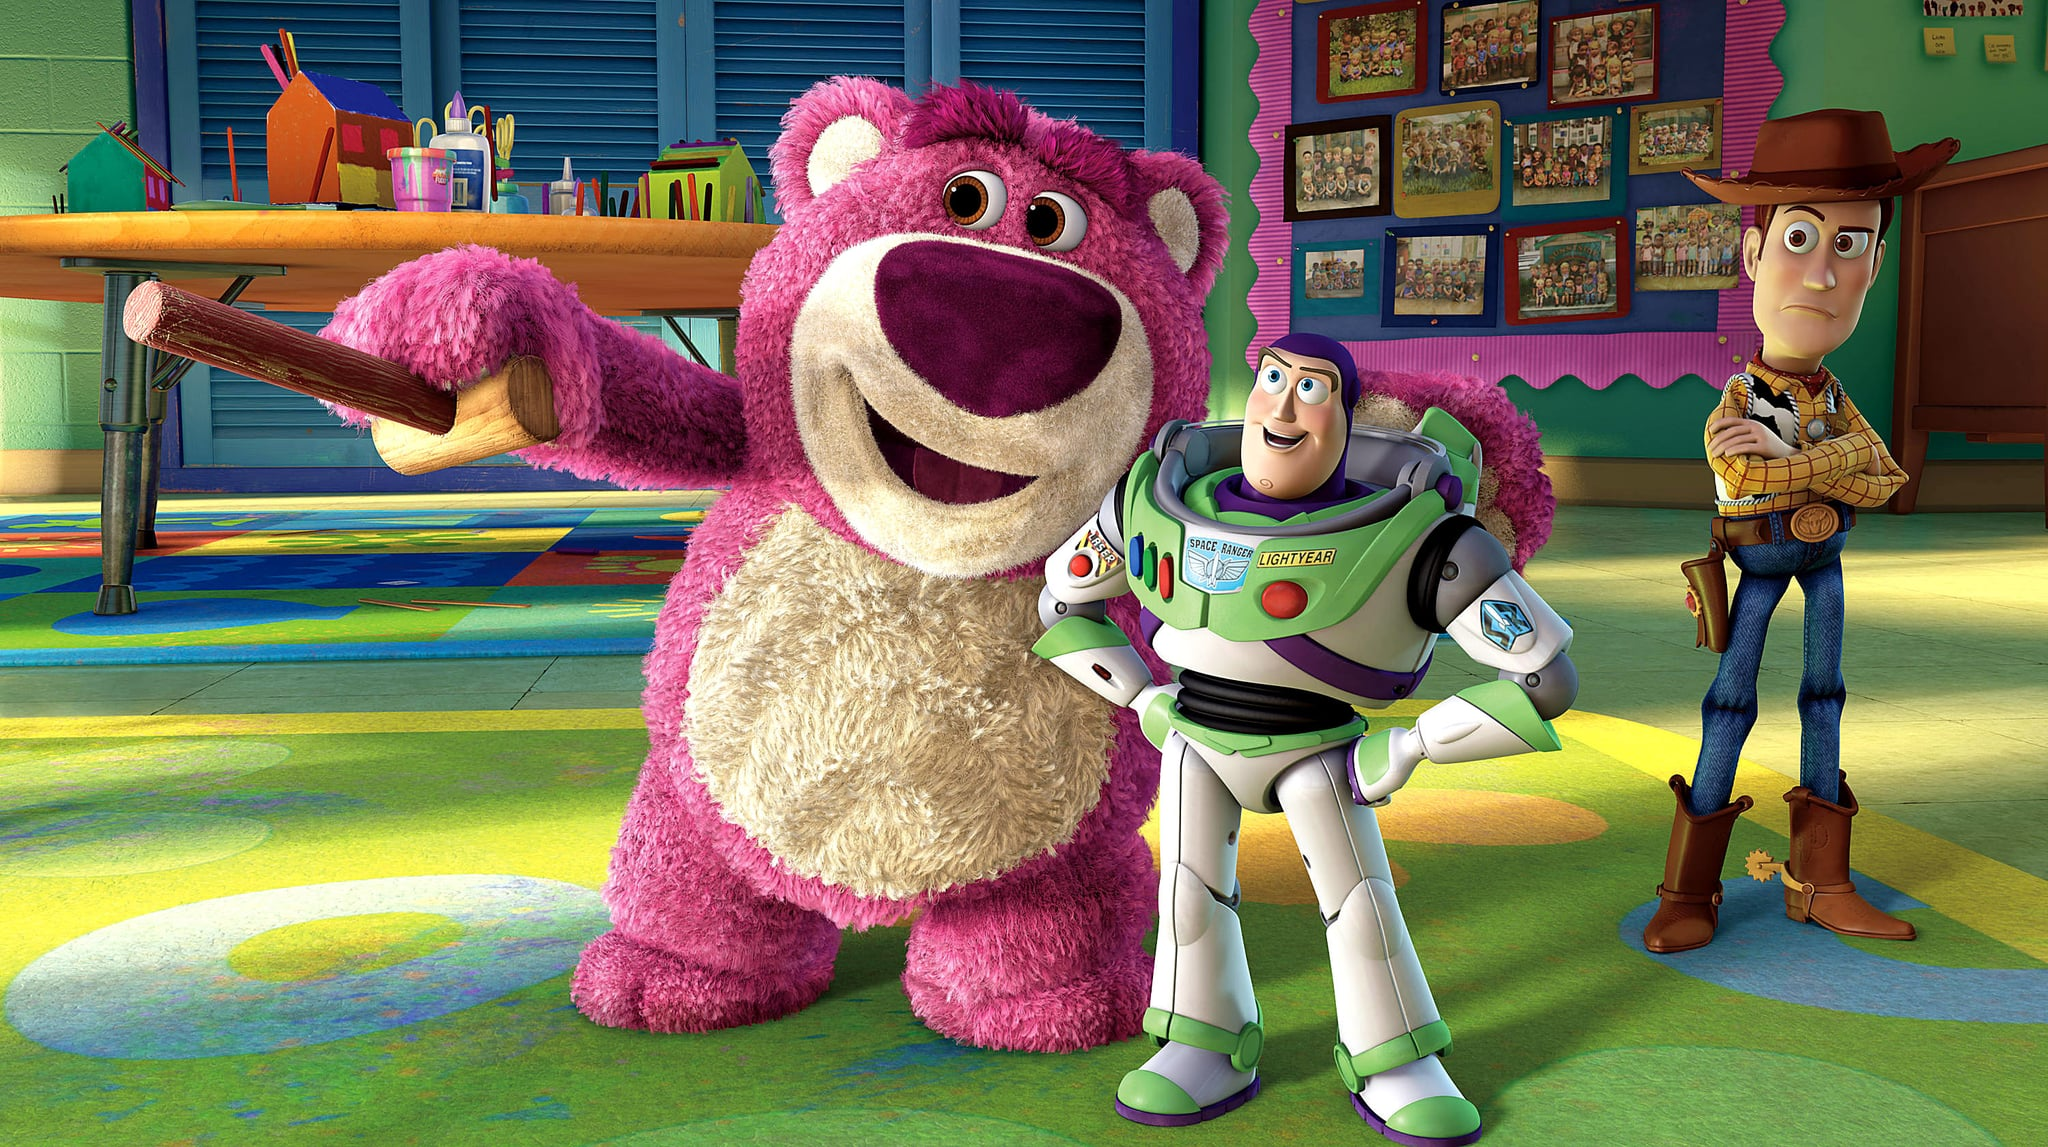 TOY STORY 3, from left: Lotso (voice: Ned Beatty), Buzz Lightyear (voice: Tim Allen), Woody (voice: Tom Hanks), 2010. Buena Vista Pictures/courtesy Everett Collection